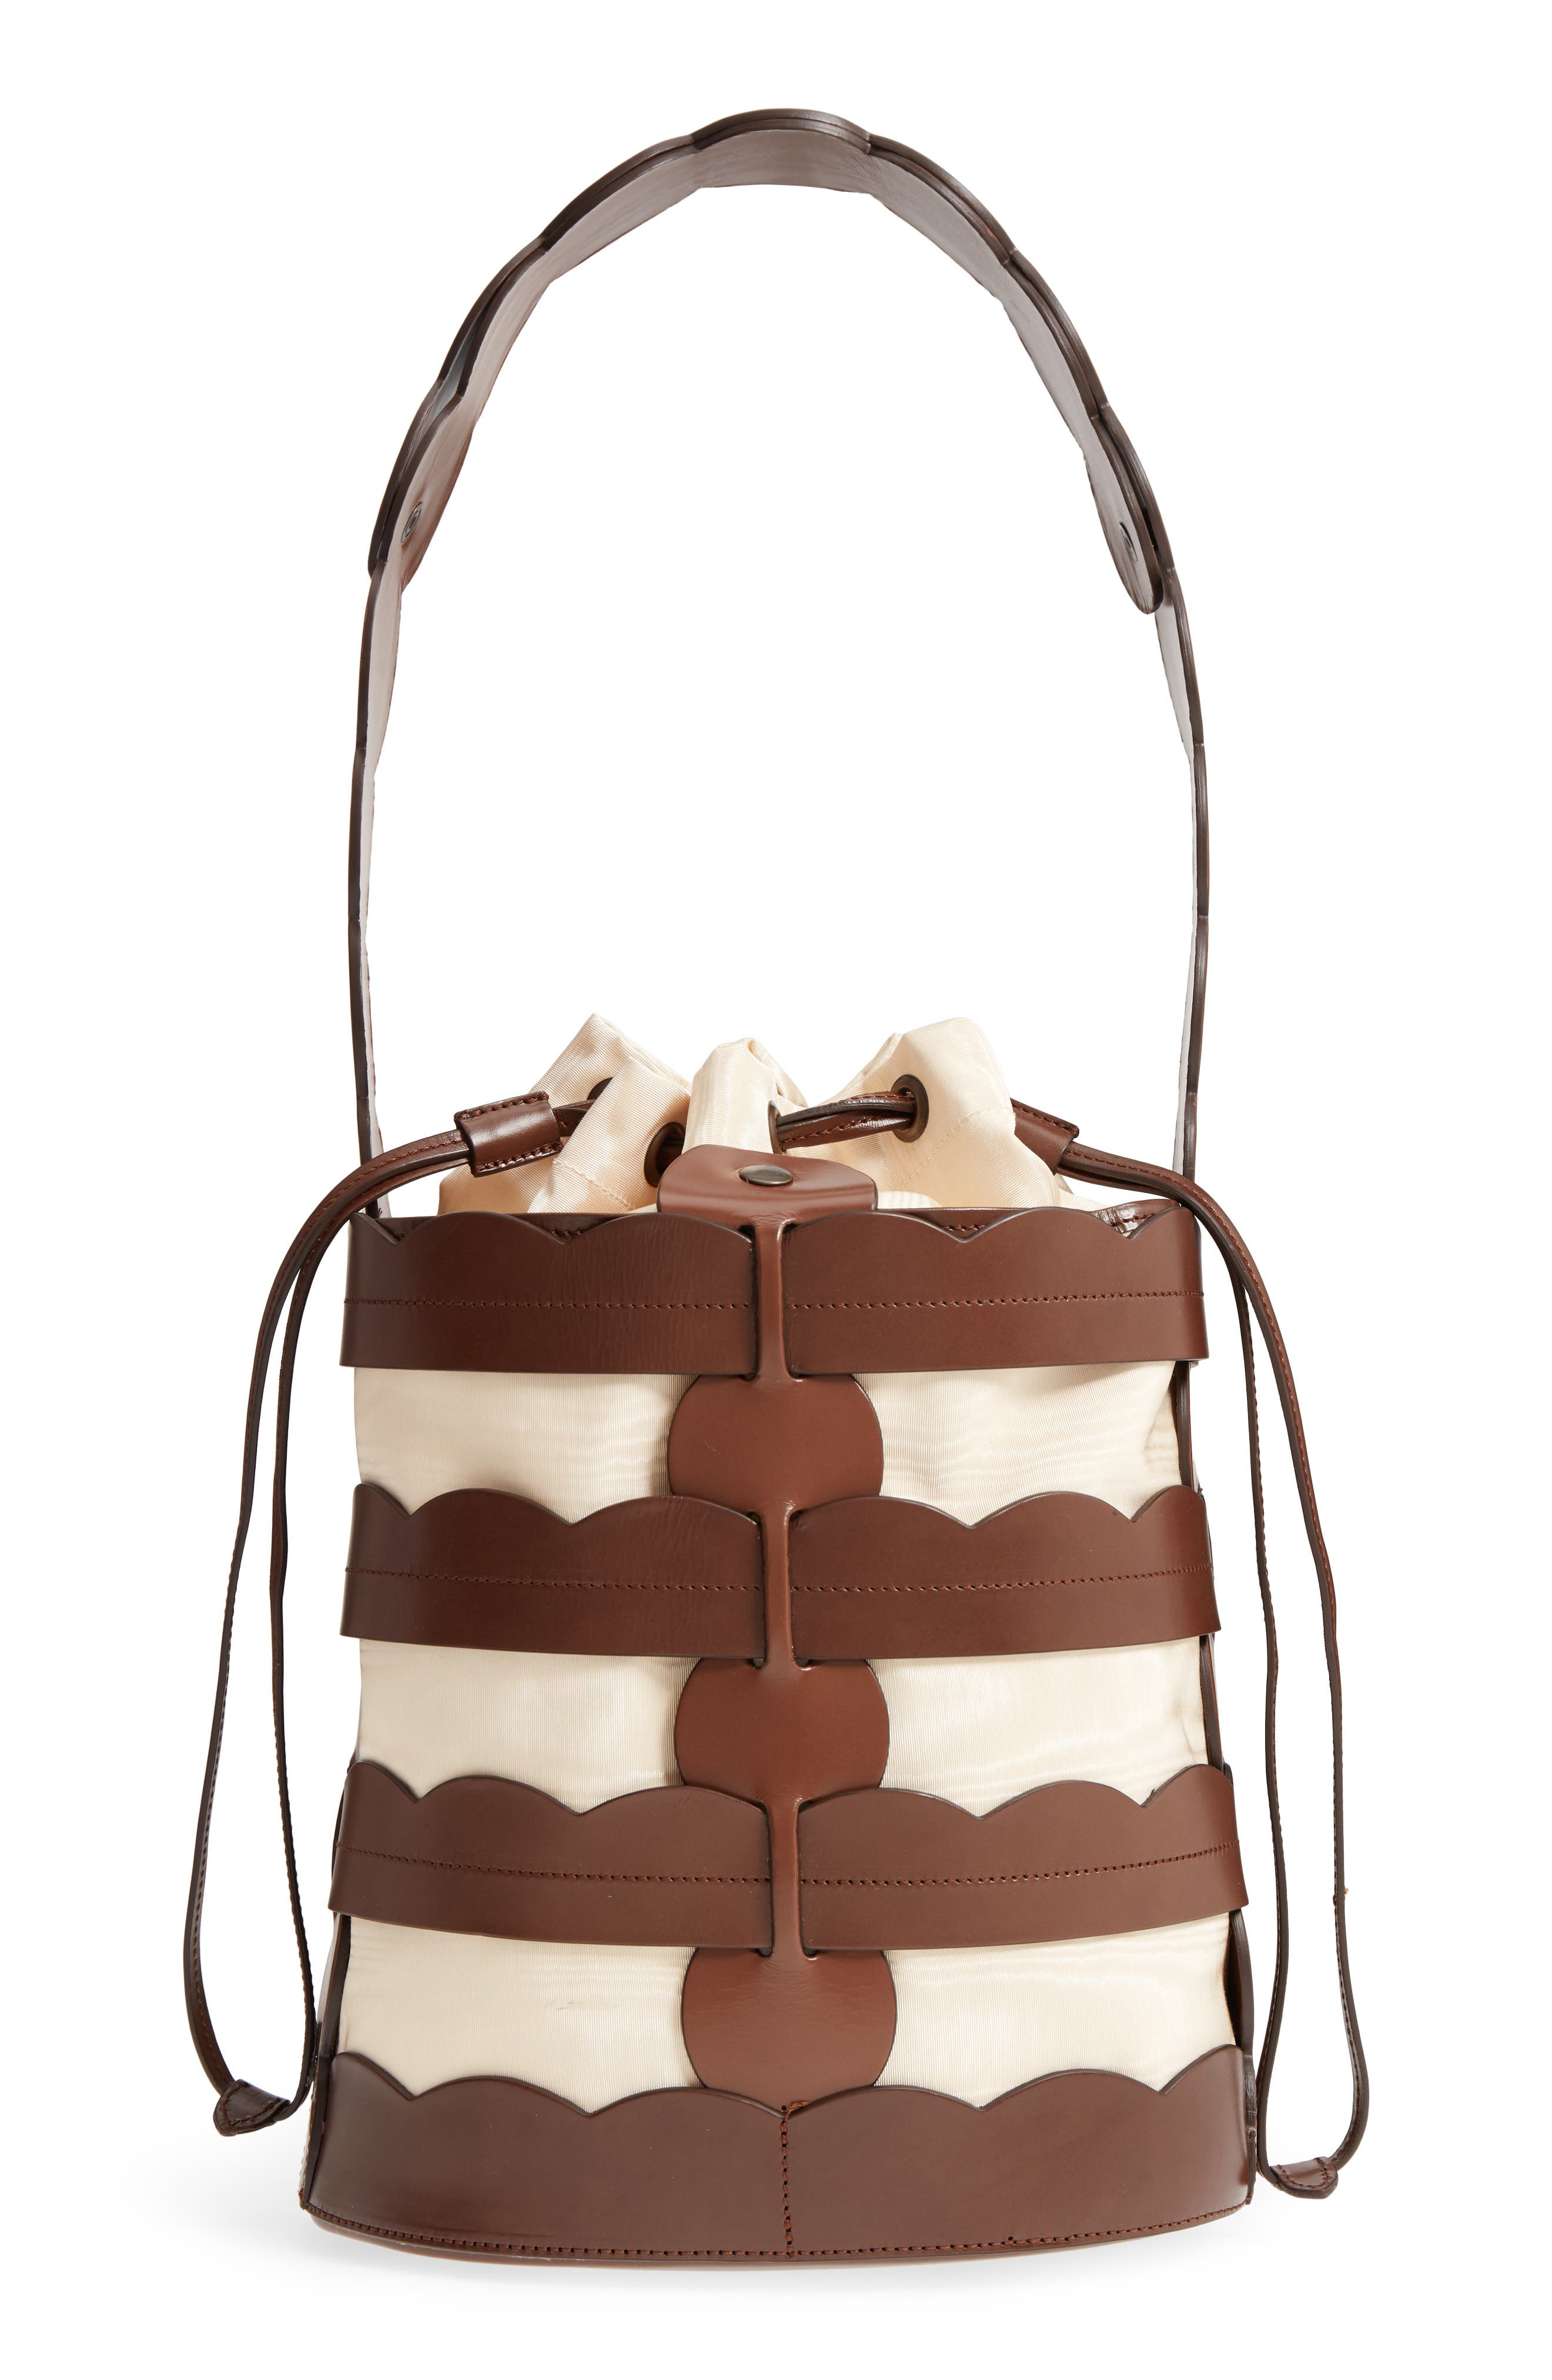 Scallop Hesse Leather Bucket Bag,                             Main thumbnail 1, color,                             Tobacco